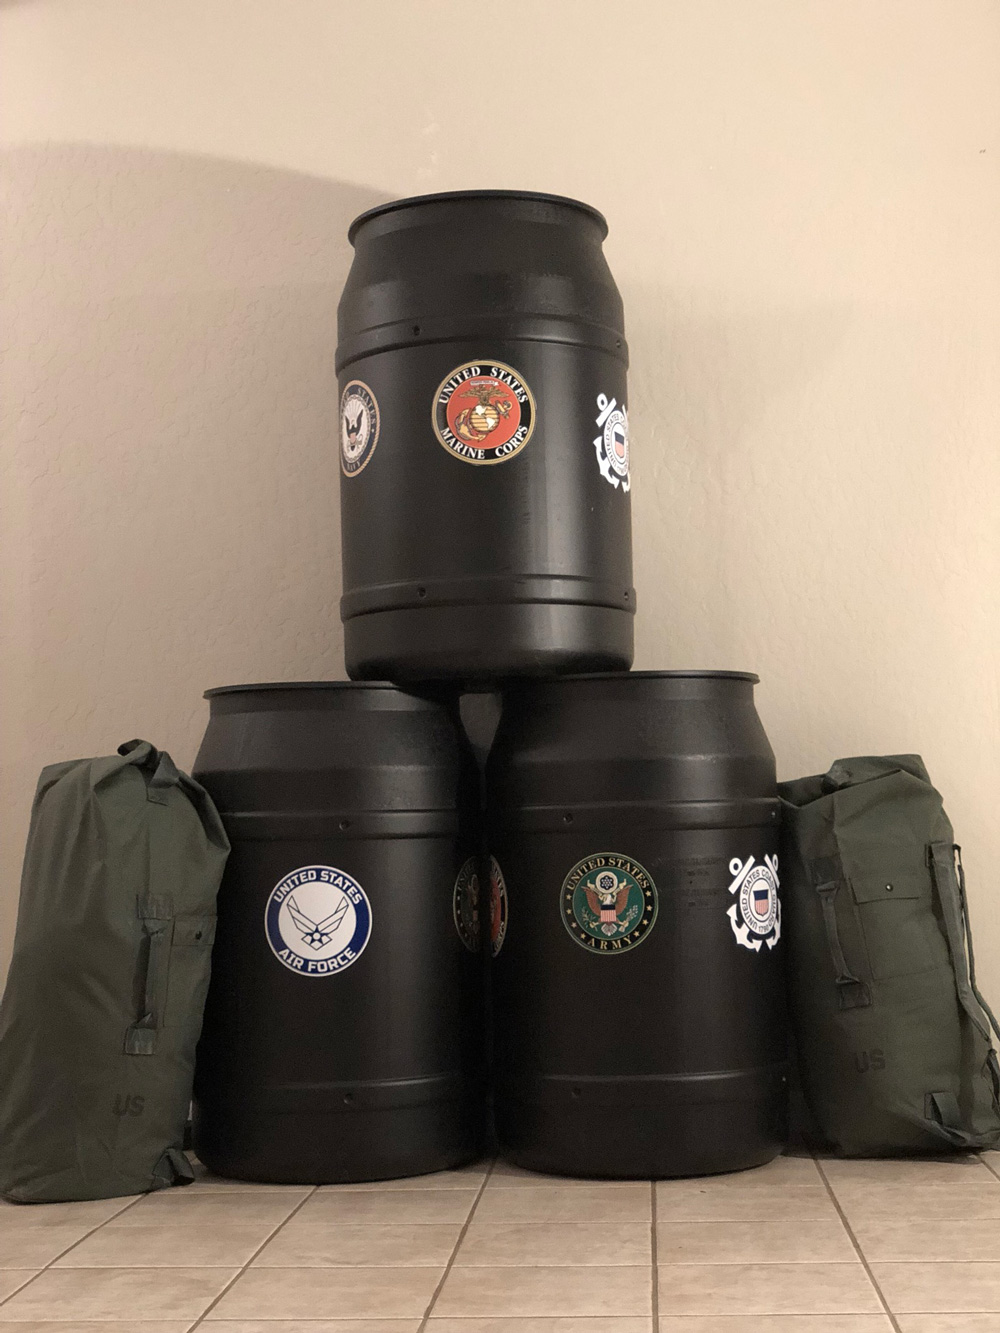 Donation collection barrels created by Tracey's organization Opertion Good to Go. The barrels are placed in businesses in order to collect supplies for veterans in need.